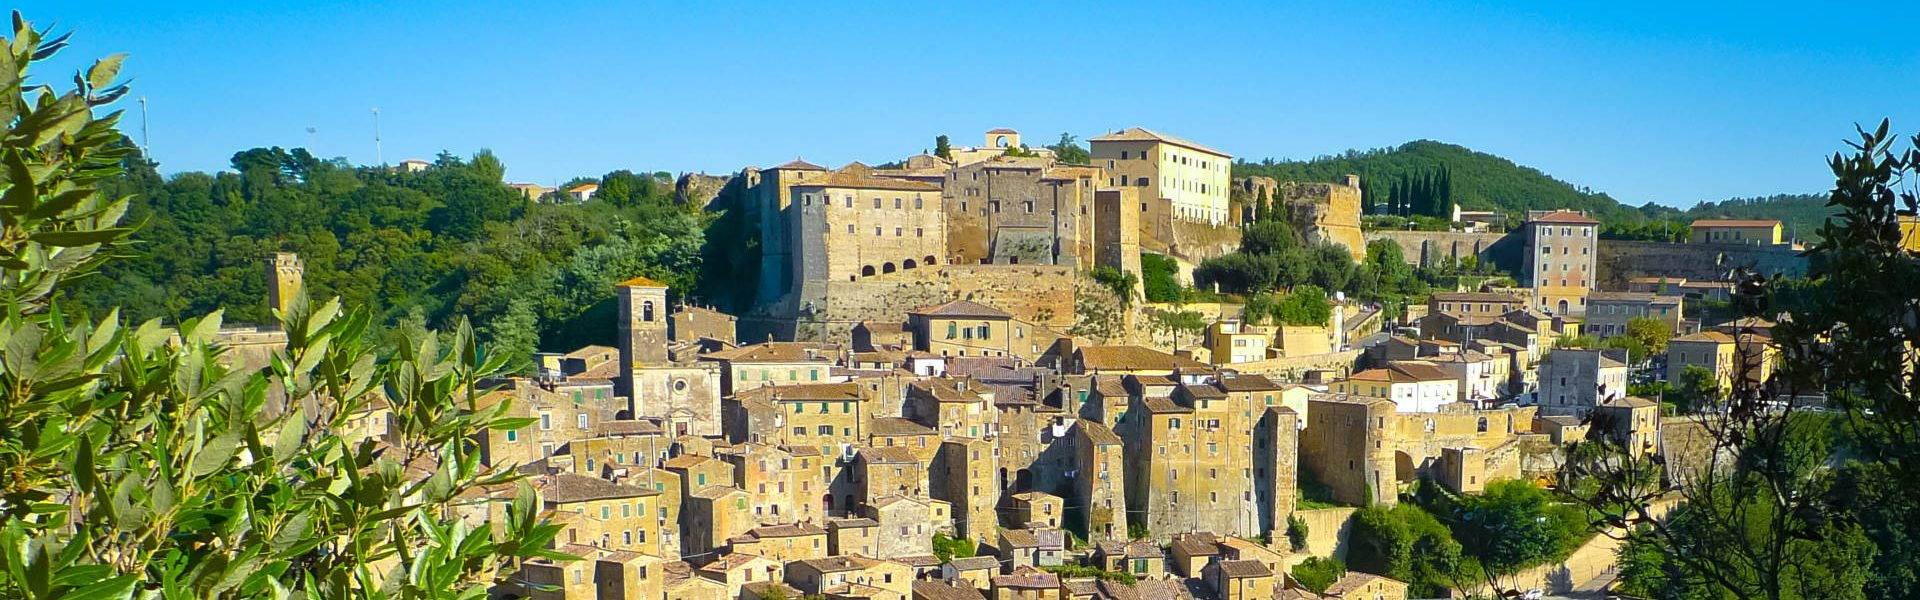 Picturesque medieval town of Sorano, Grosseto, Tuscany, Italy